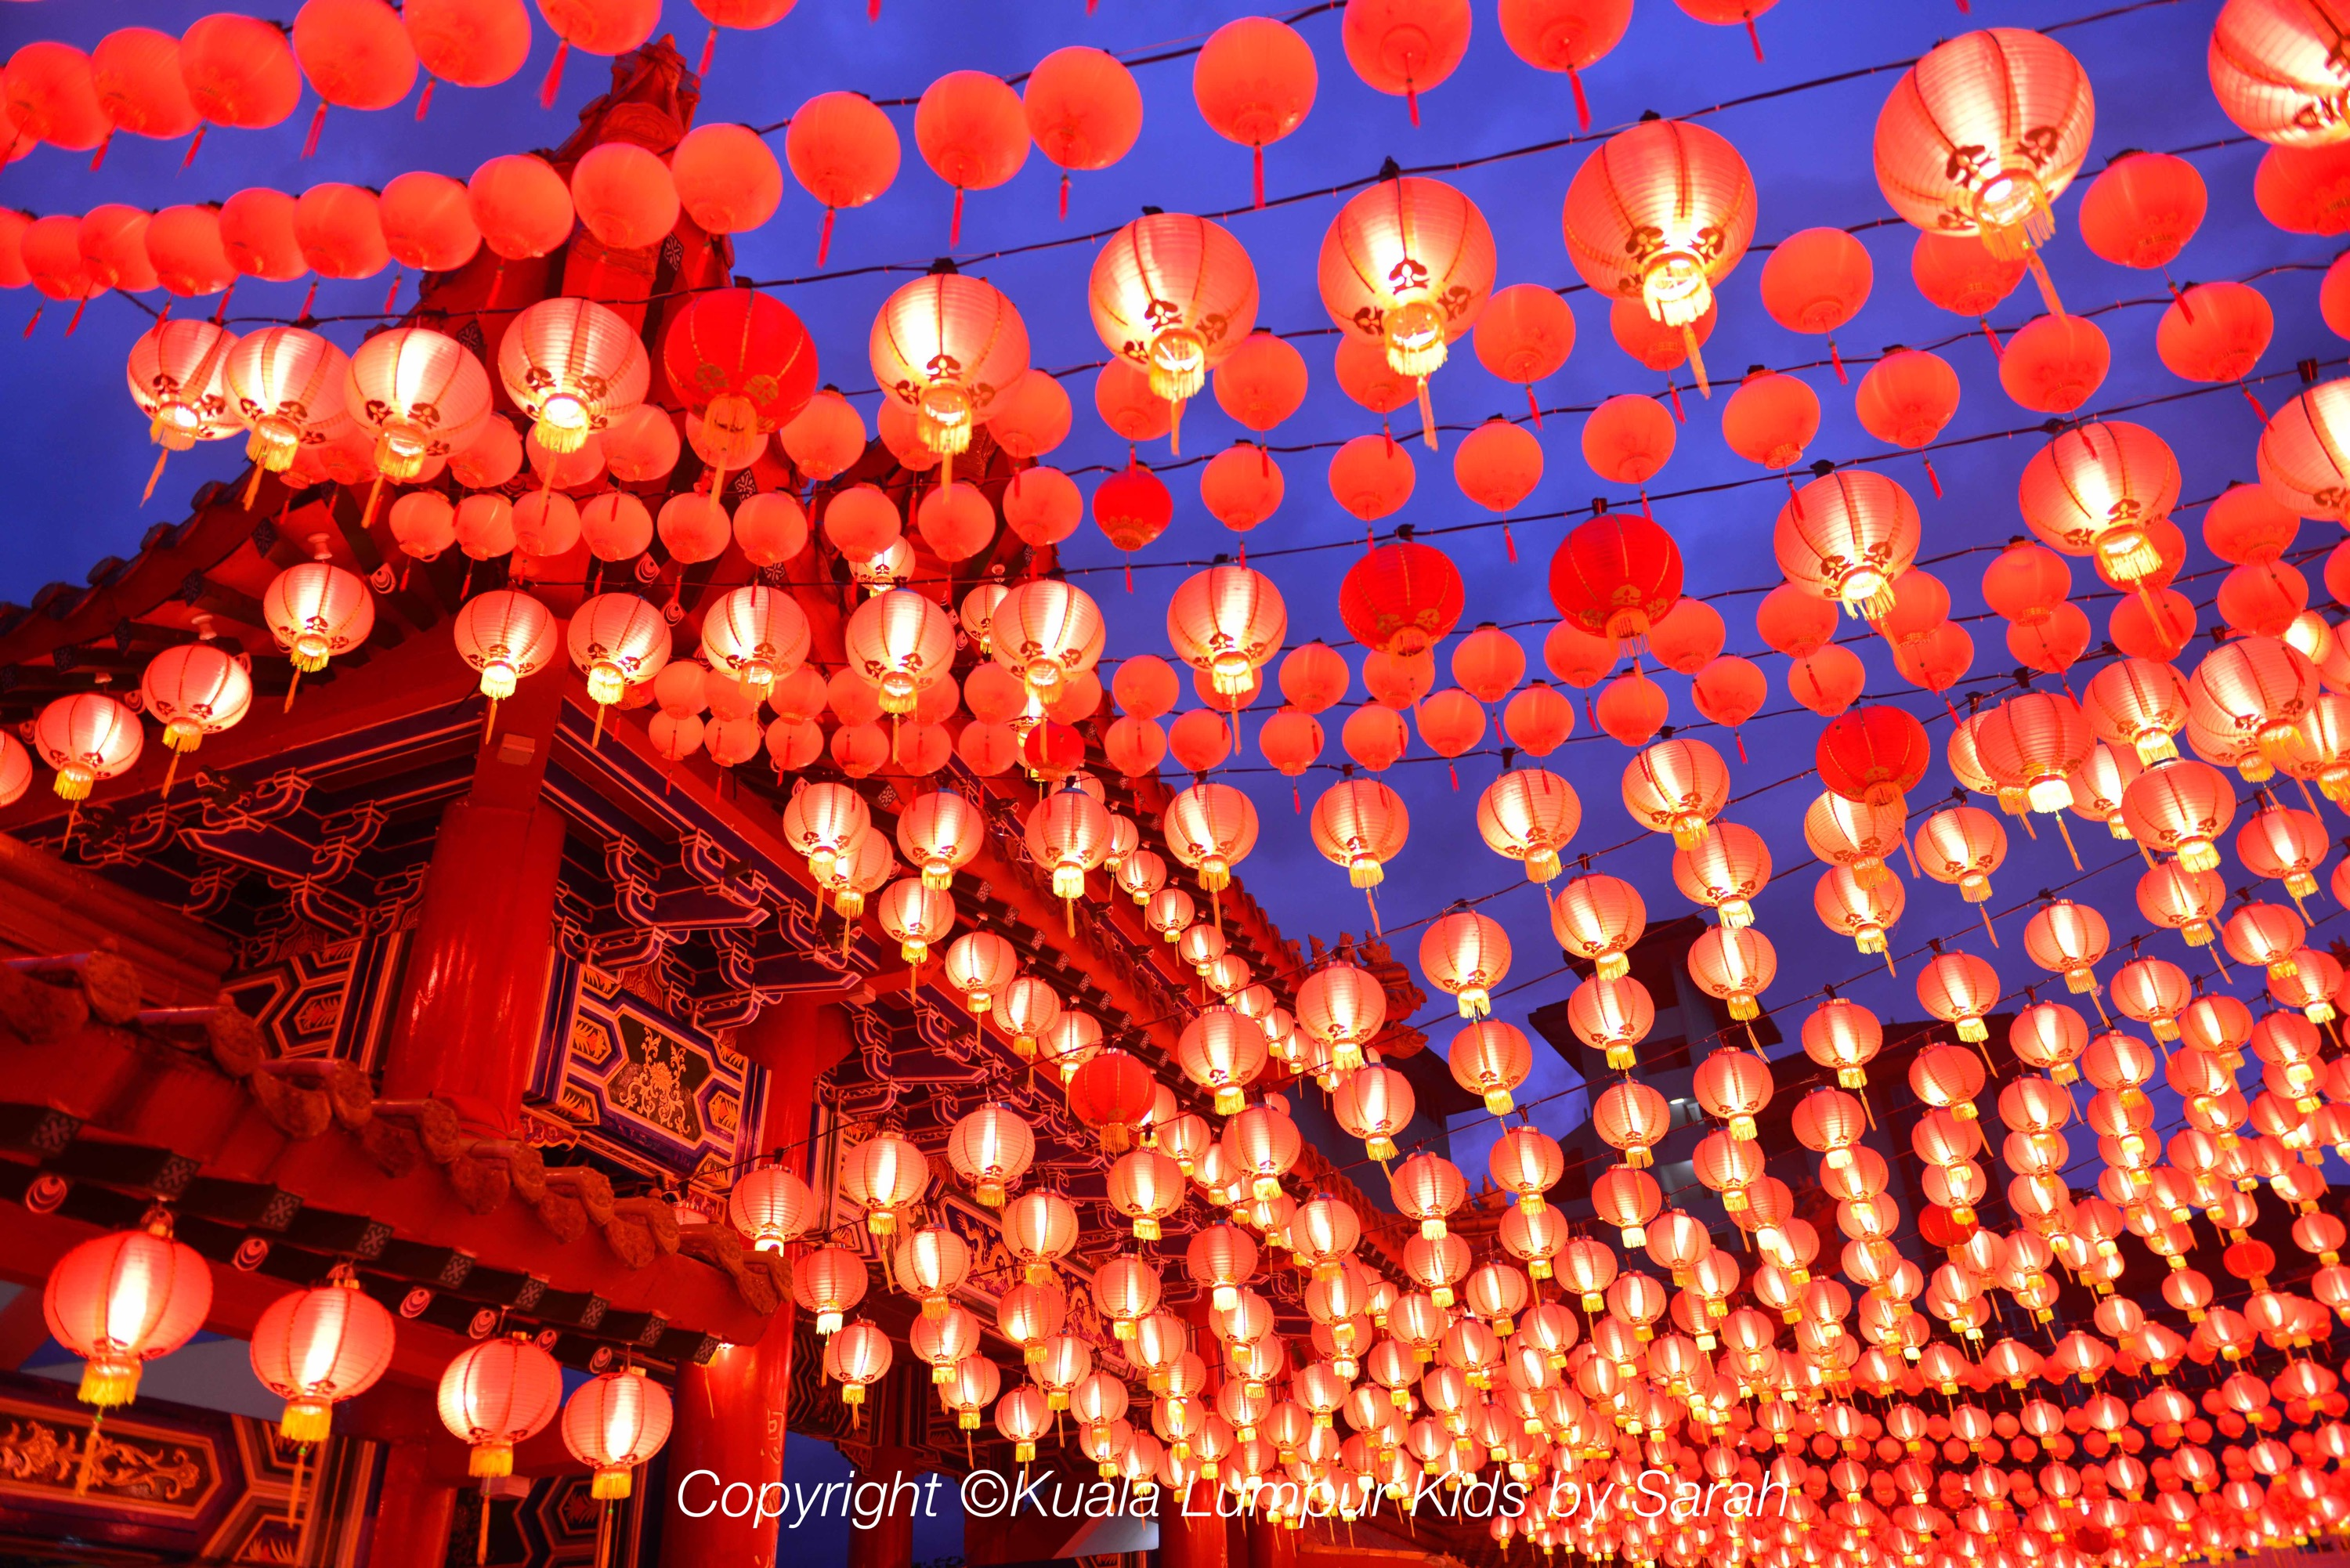 Thean Hou Temple The Lantern Festival Not To Be Missed